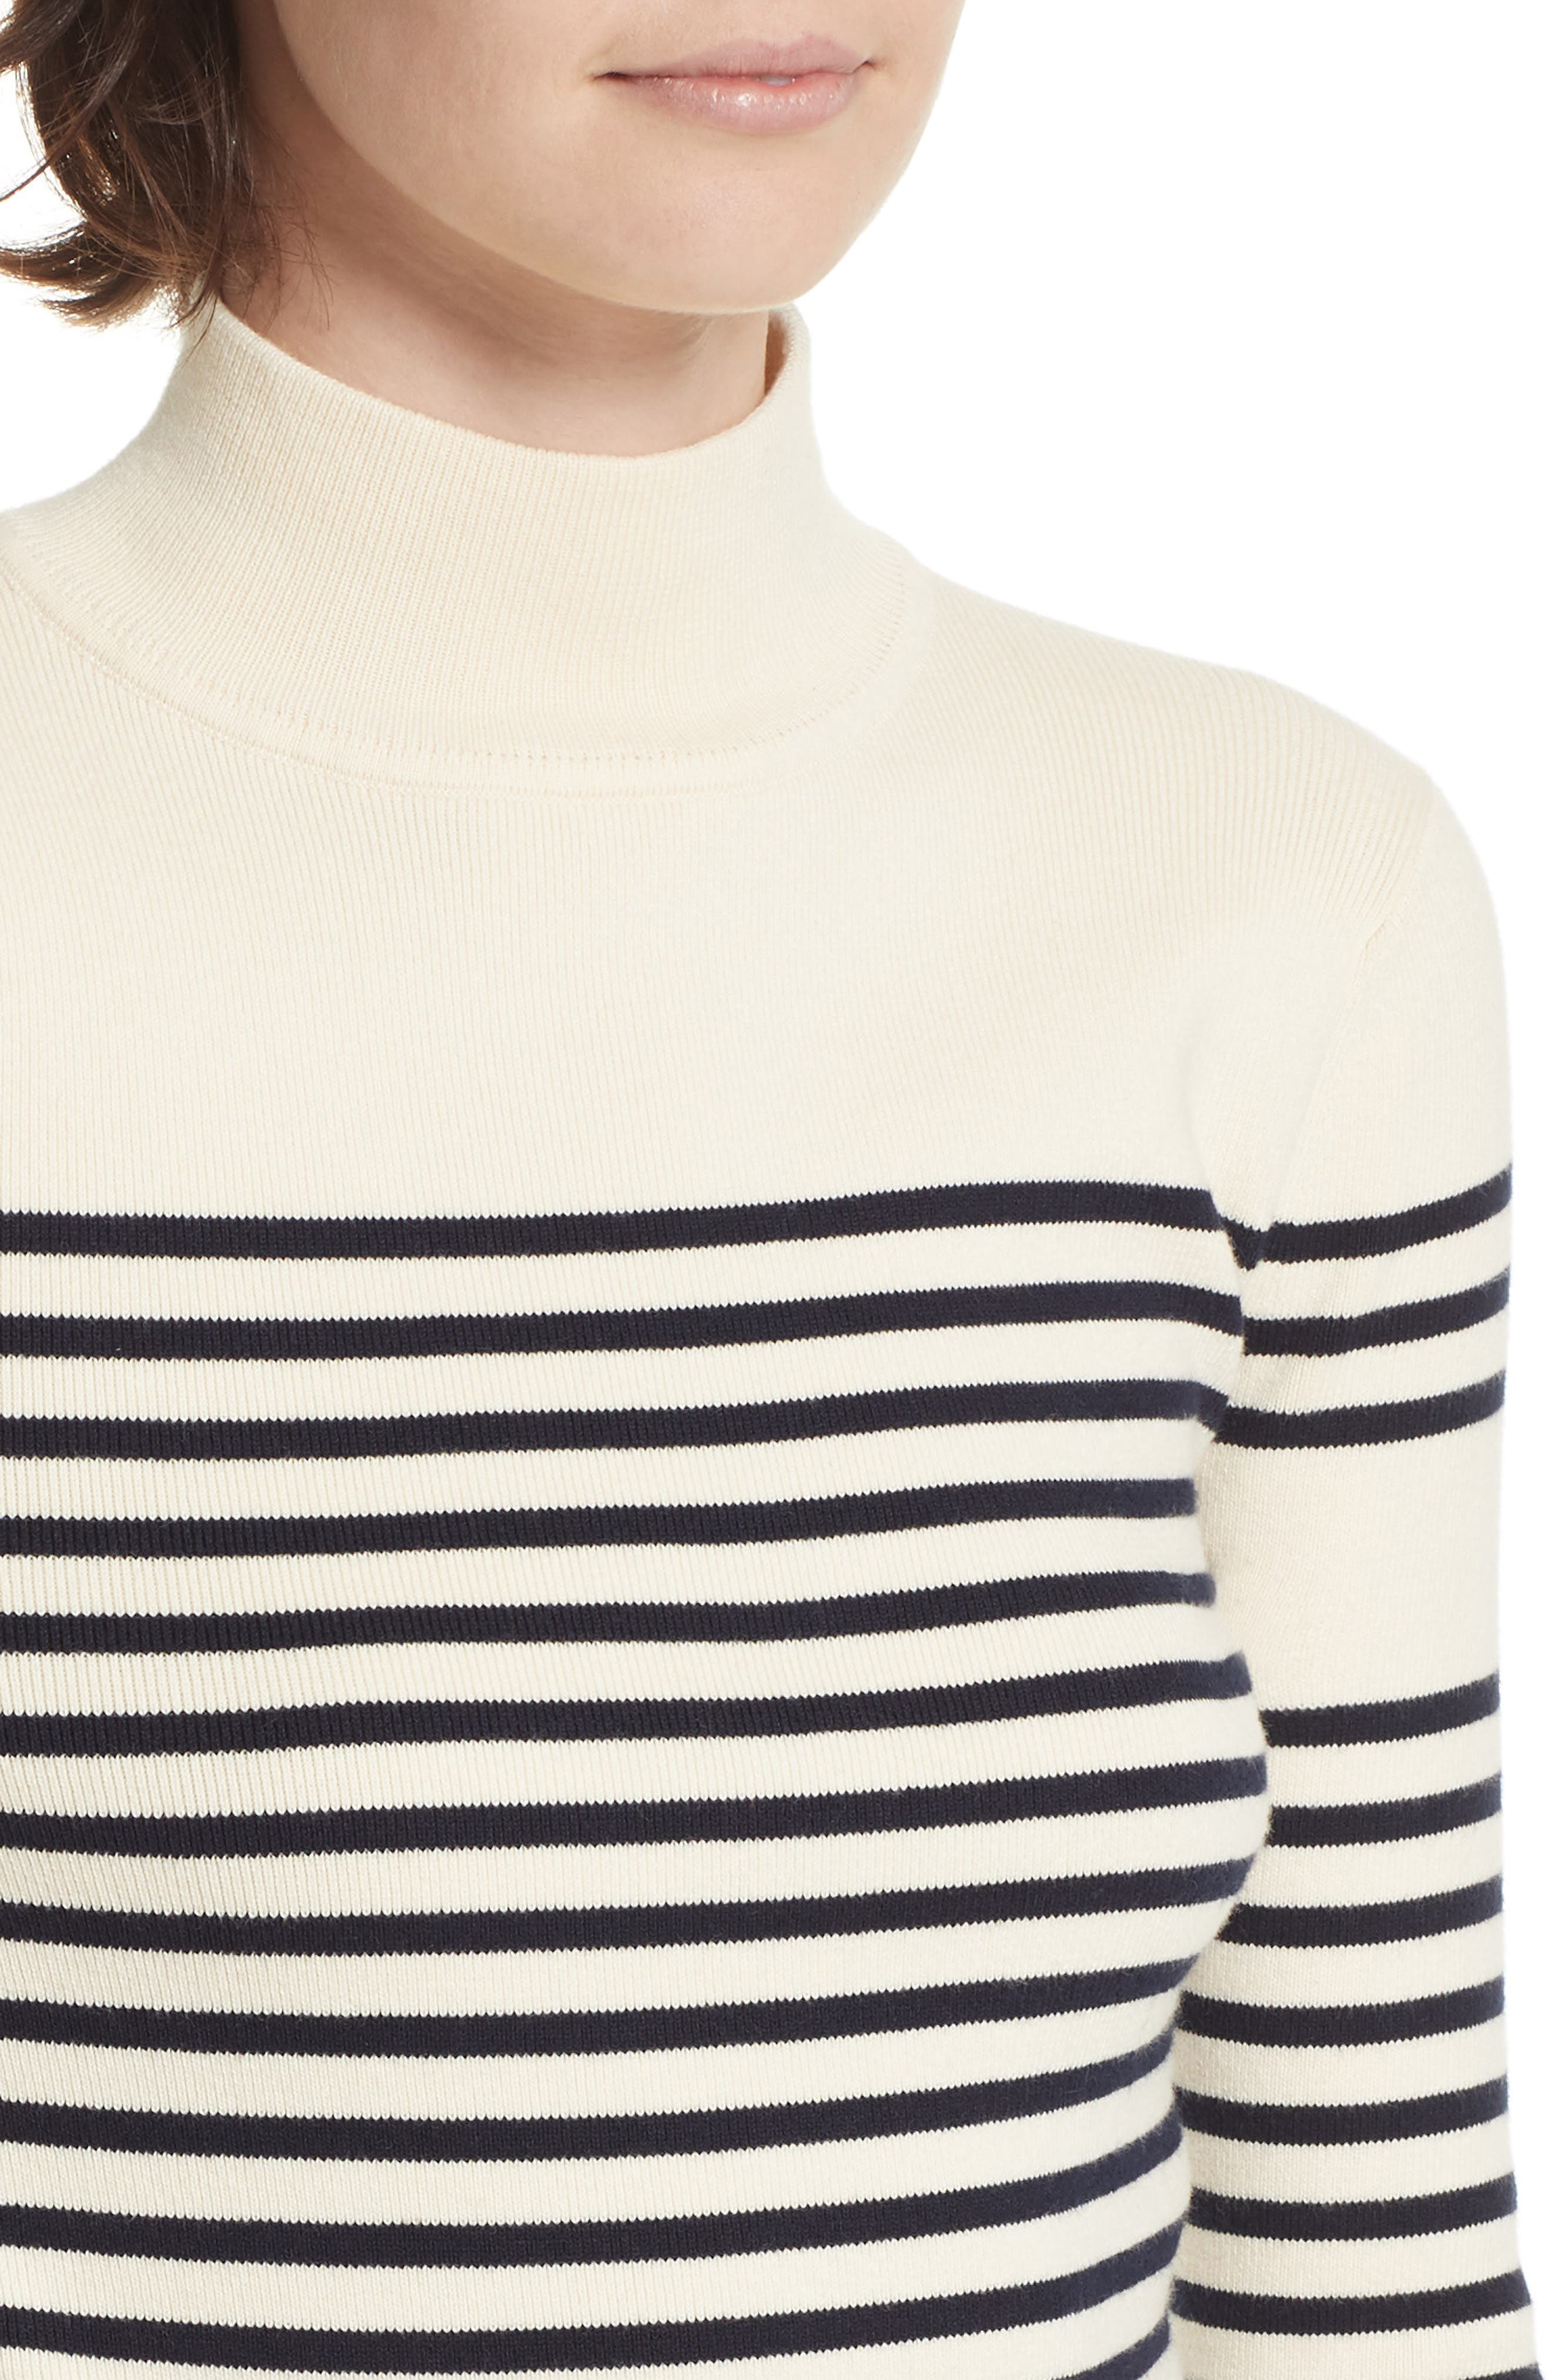 Classique Stripe Sweater,                             Alternate thumbnail 4, color,                             CREAM/ NAVY STRIPES